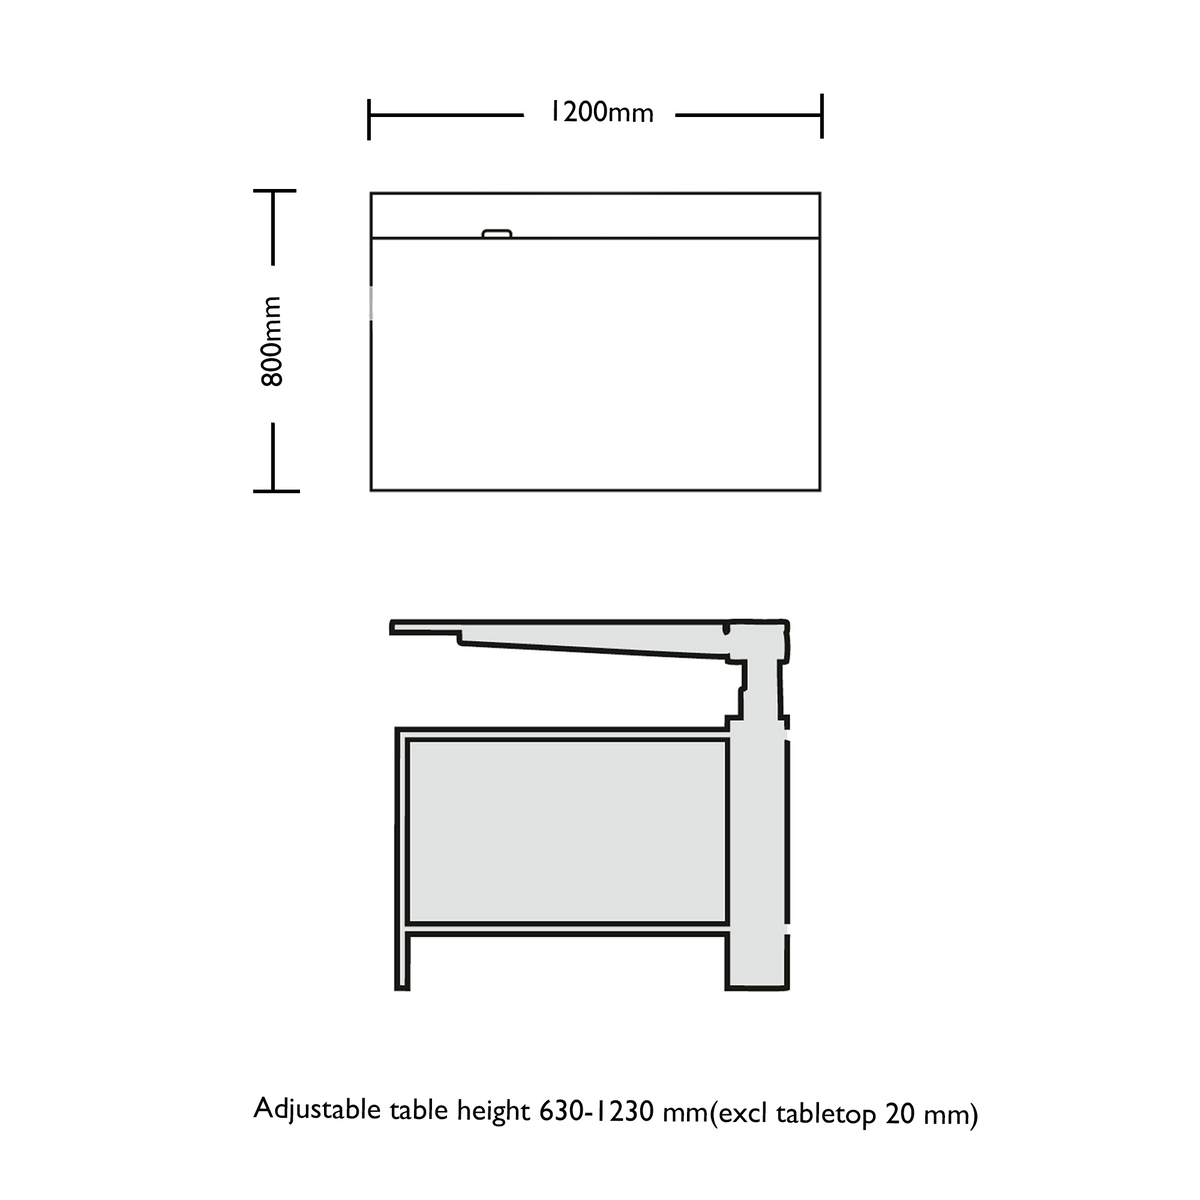 Dimensions for Edsbyn Office HiLo Single Sit Stand Desk